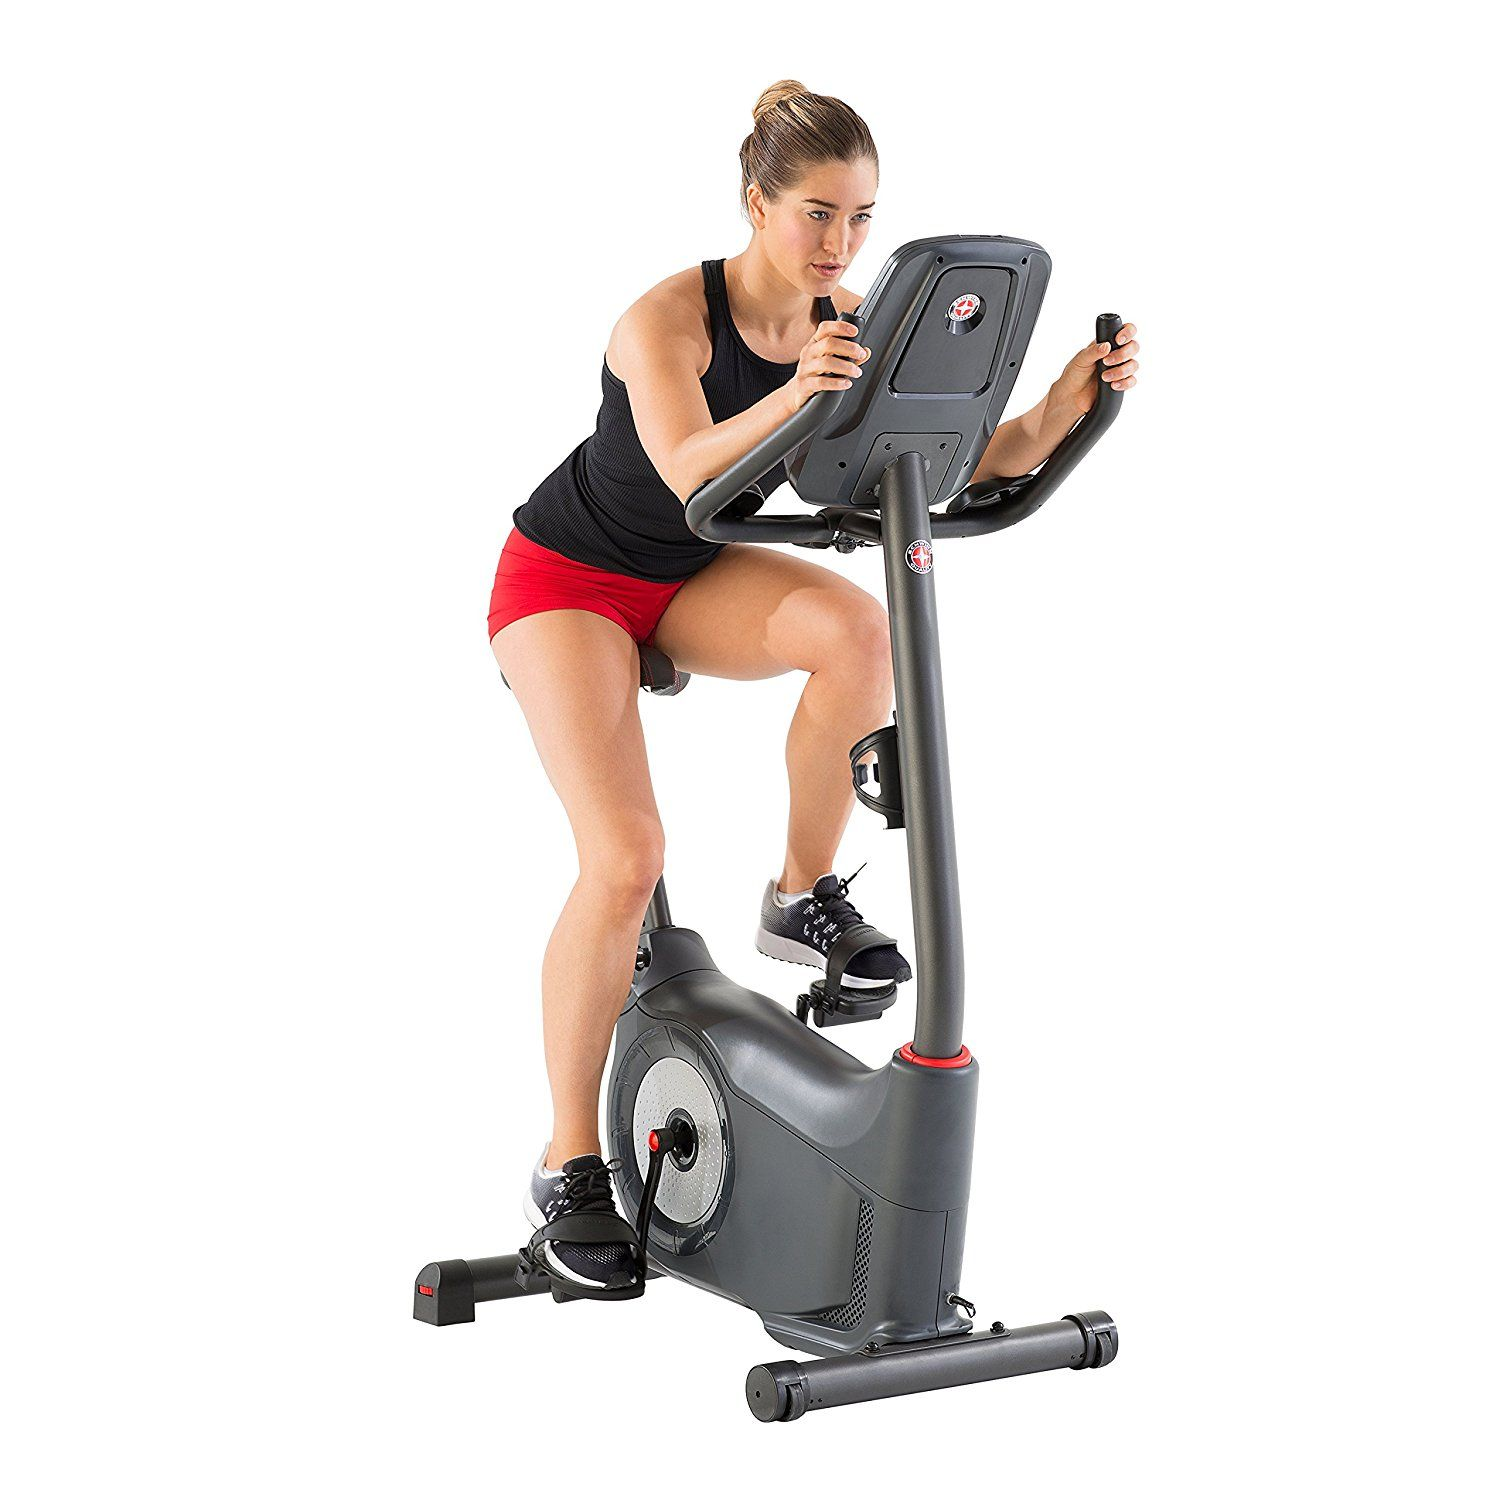 Top 10 Best Schwinn Exercise Bikes In 2020 Reviews Upright